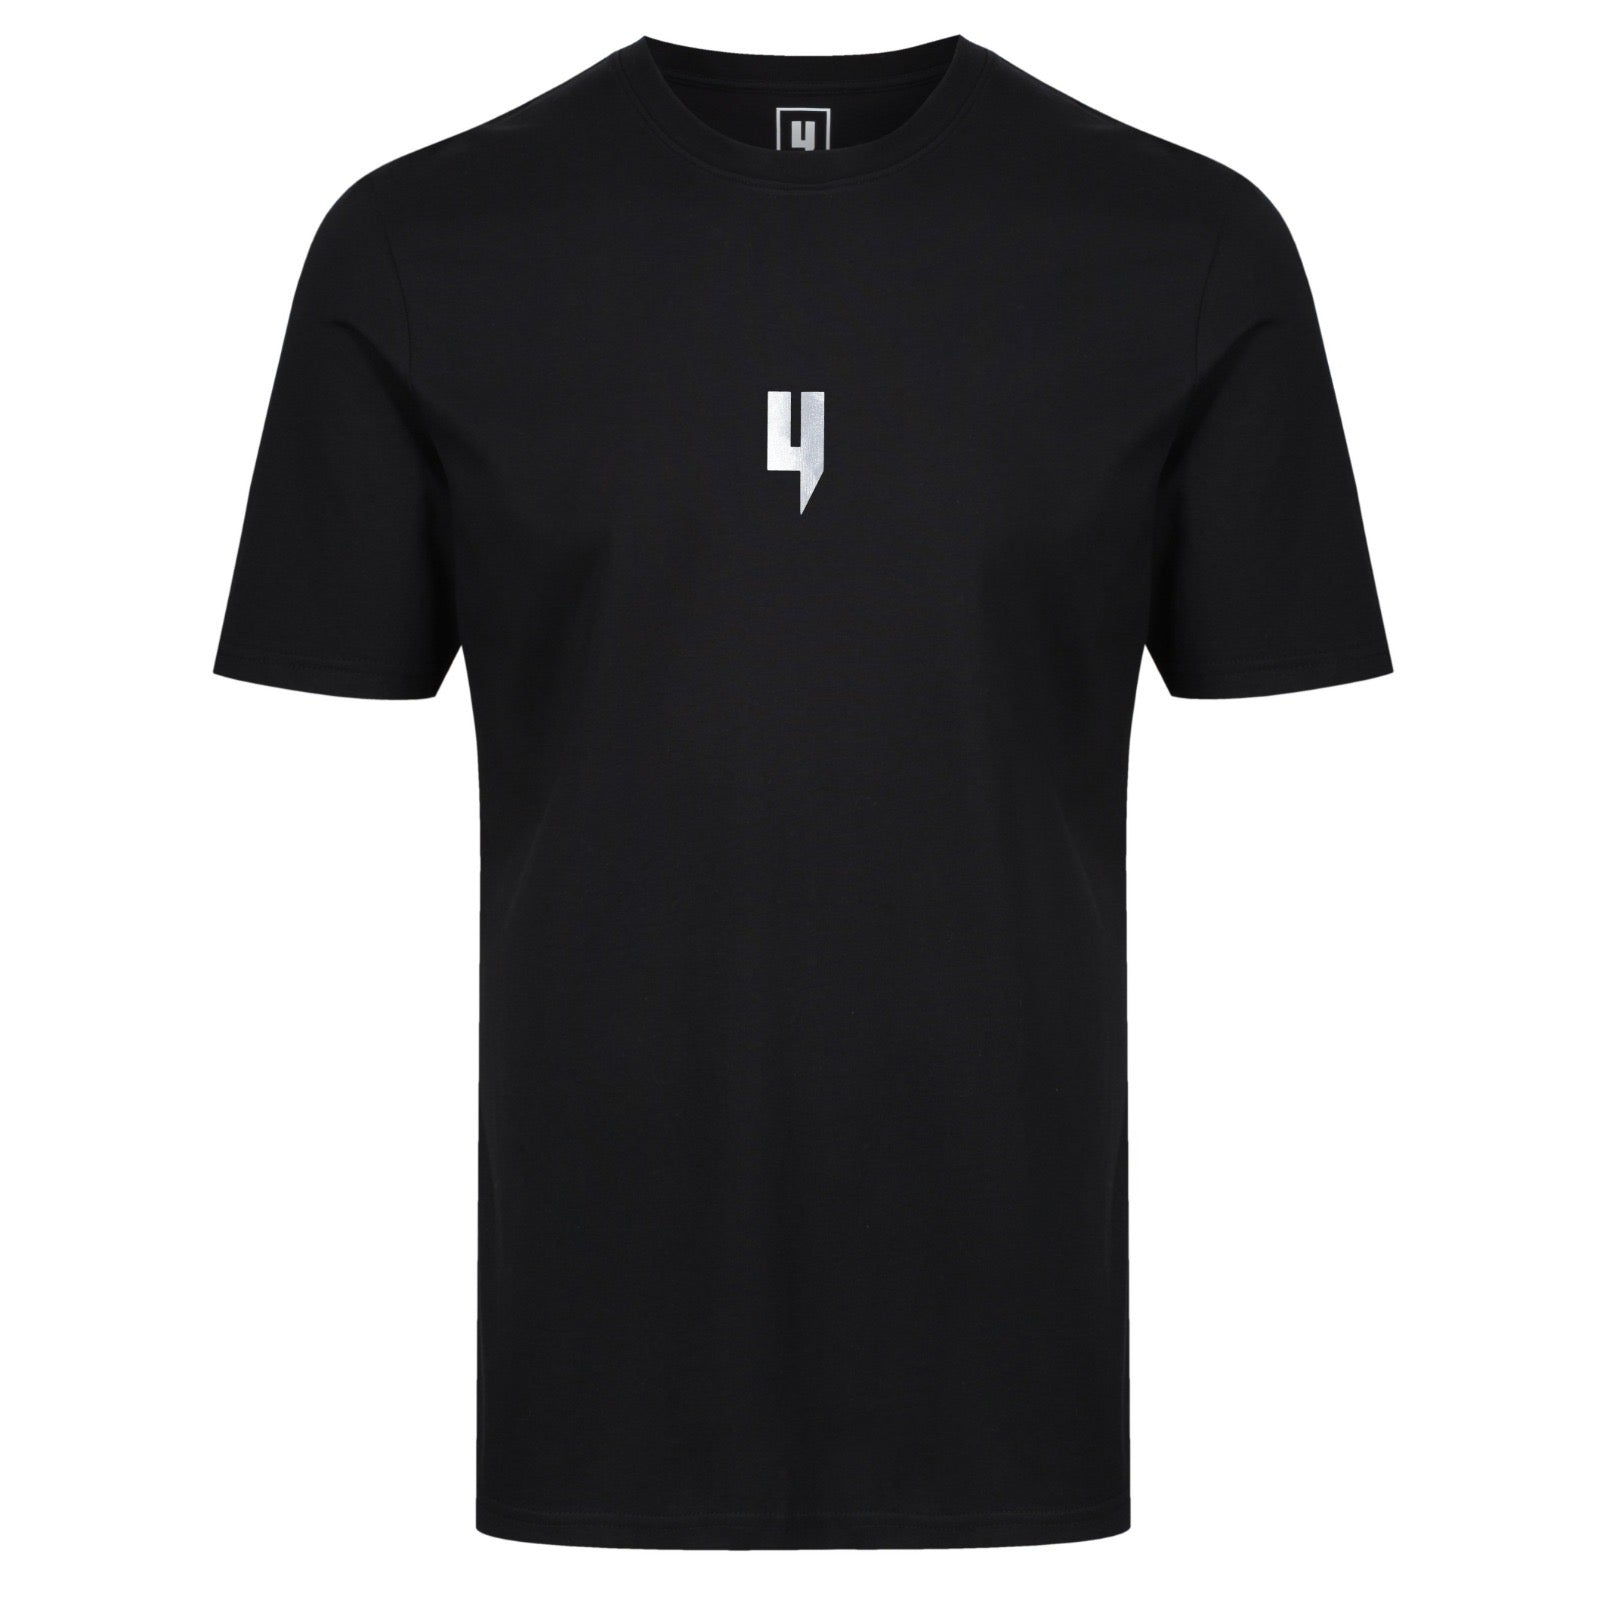 YELIR WORLD Y LOGO REFLECTIVE TEE BLACK